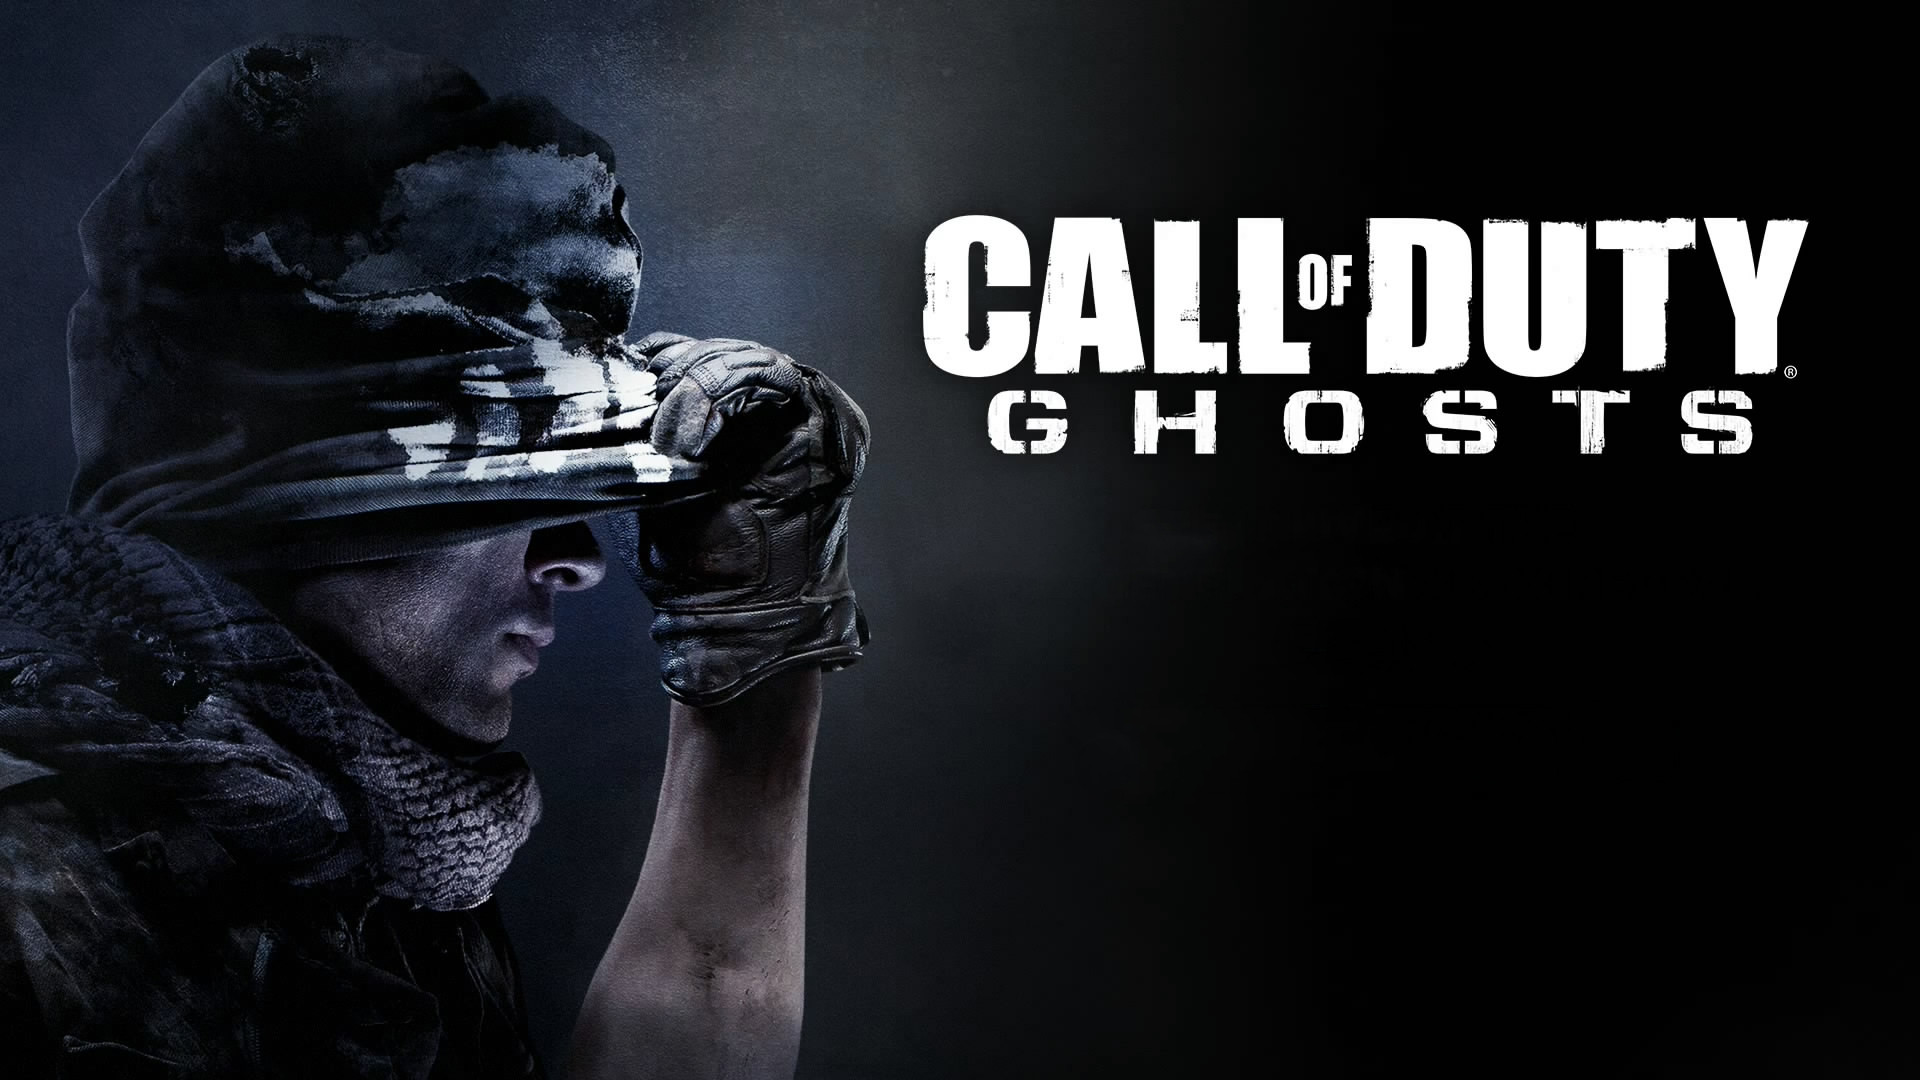 Europe's Best CoD Players Head to London for the Call of Duty: Ghosts European Championships